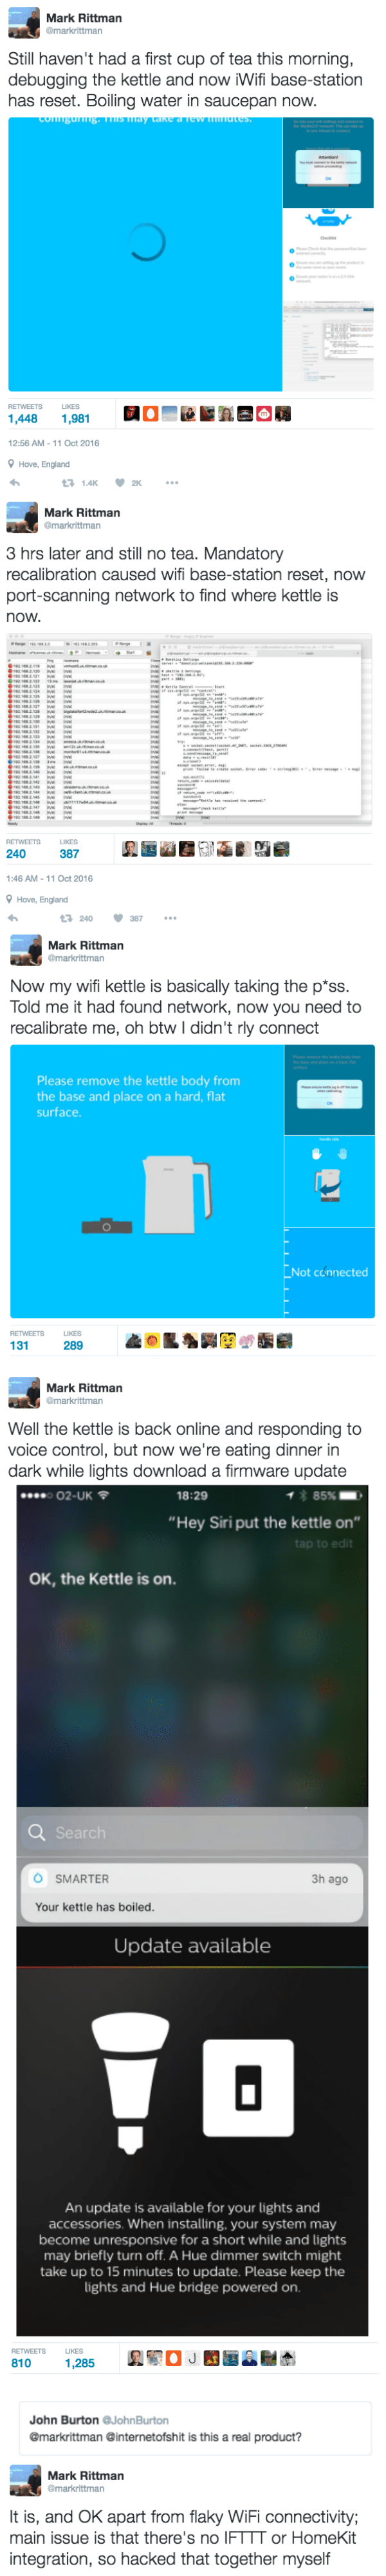 screen grab of twitter person trying to get his wifi kettle working